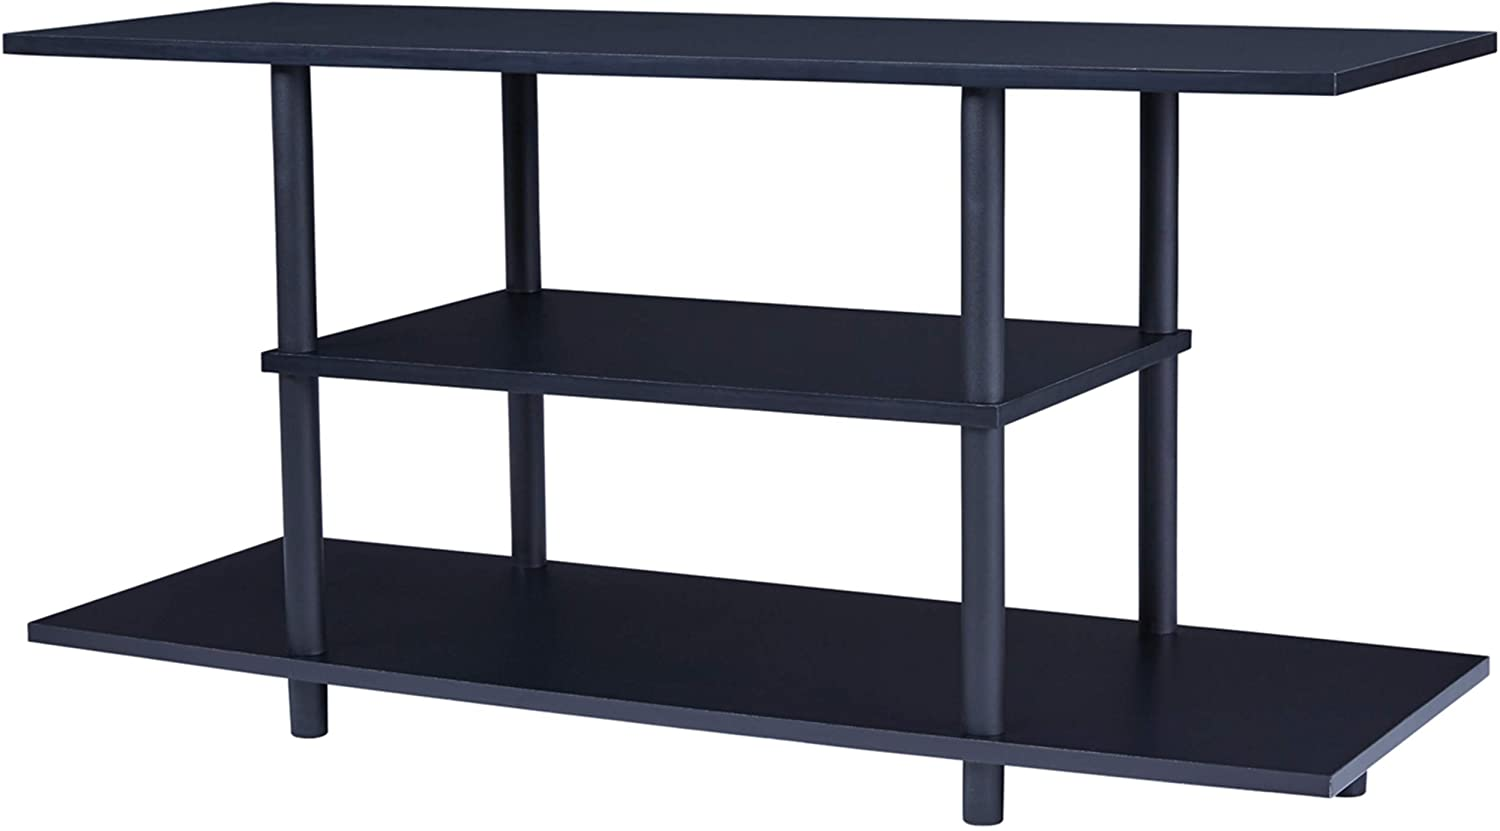 Signature Design by Ashley Cooperson TV Stand Black